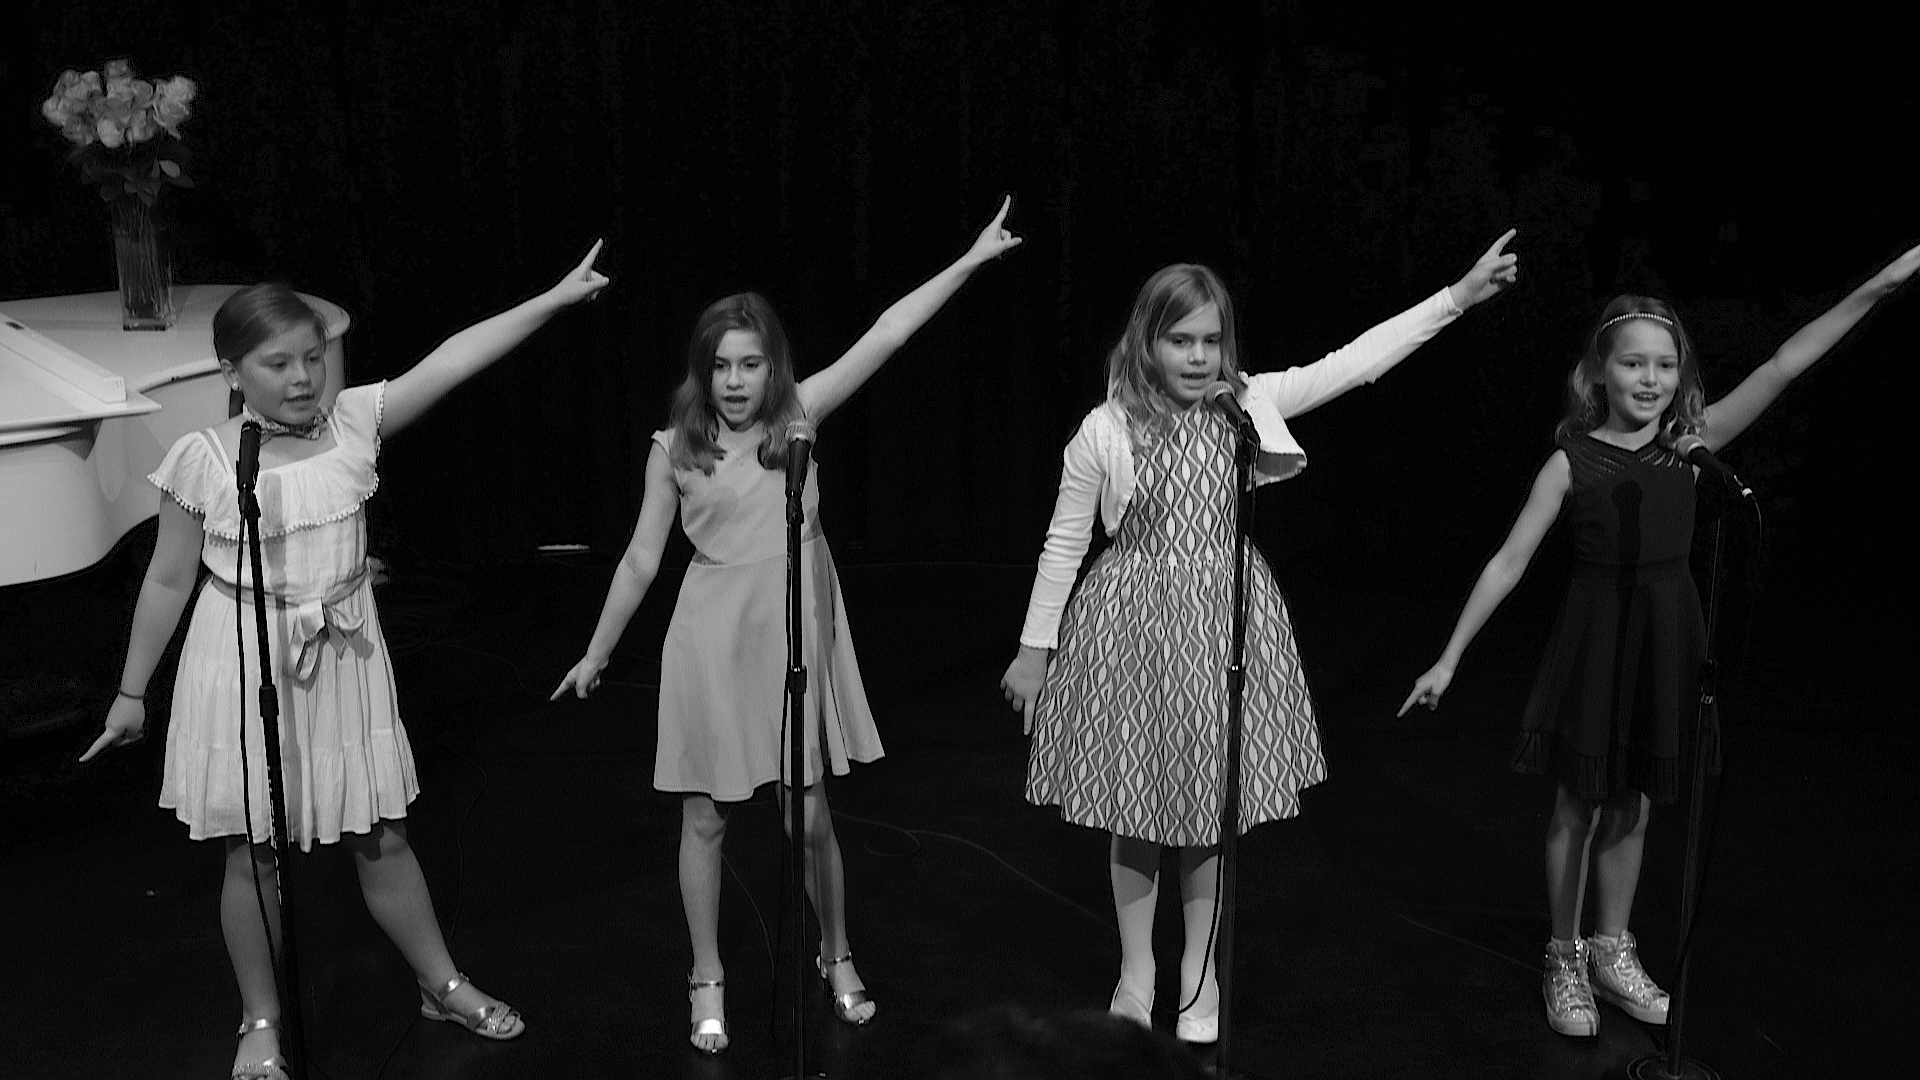 Girls Singing with arms.png